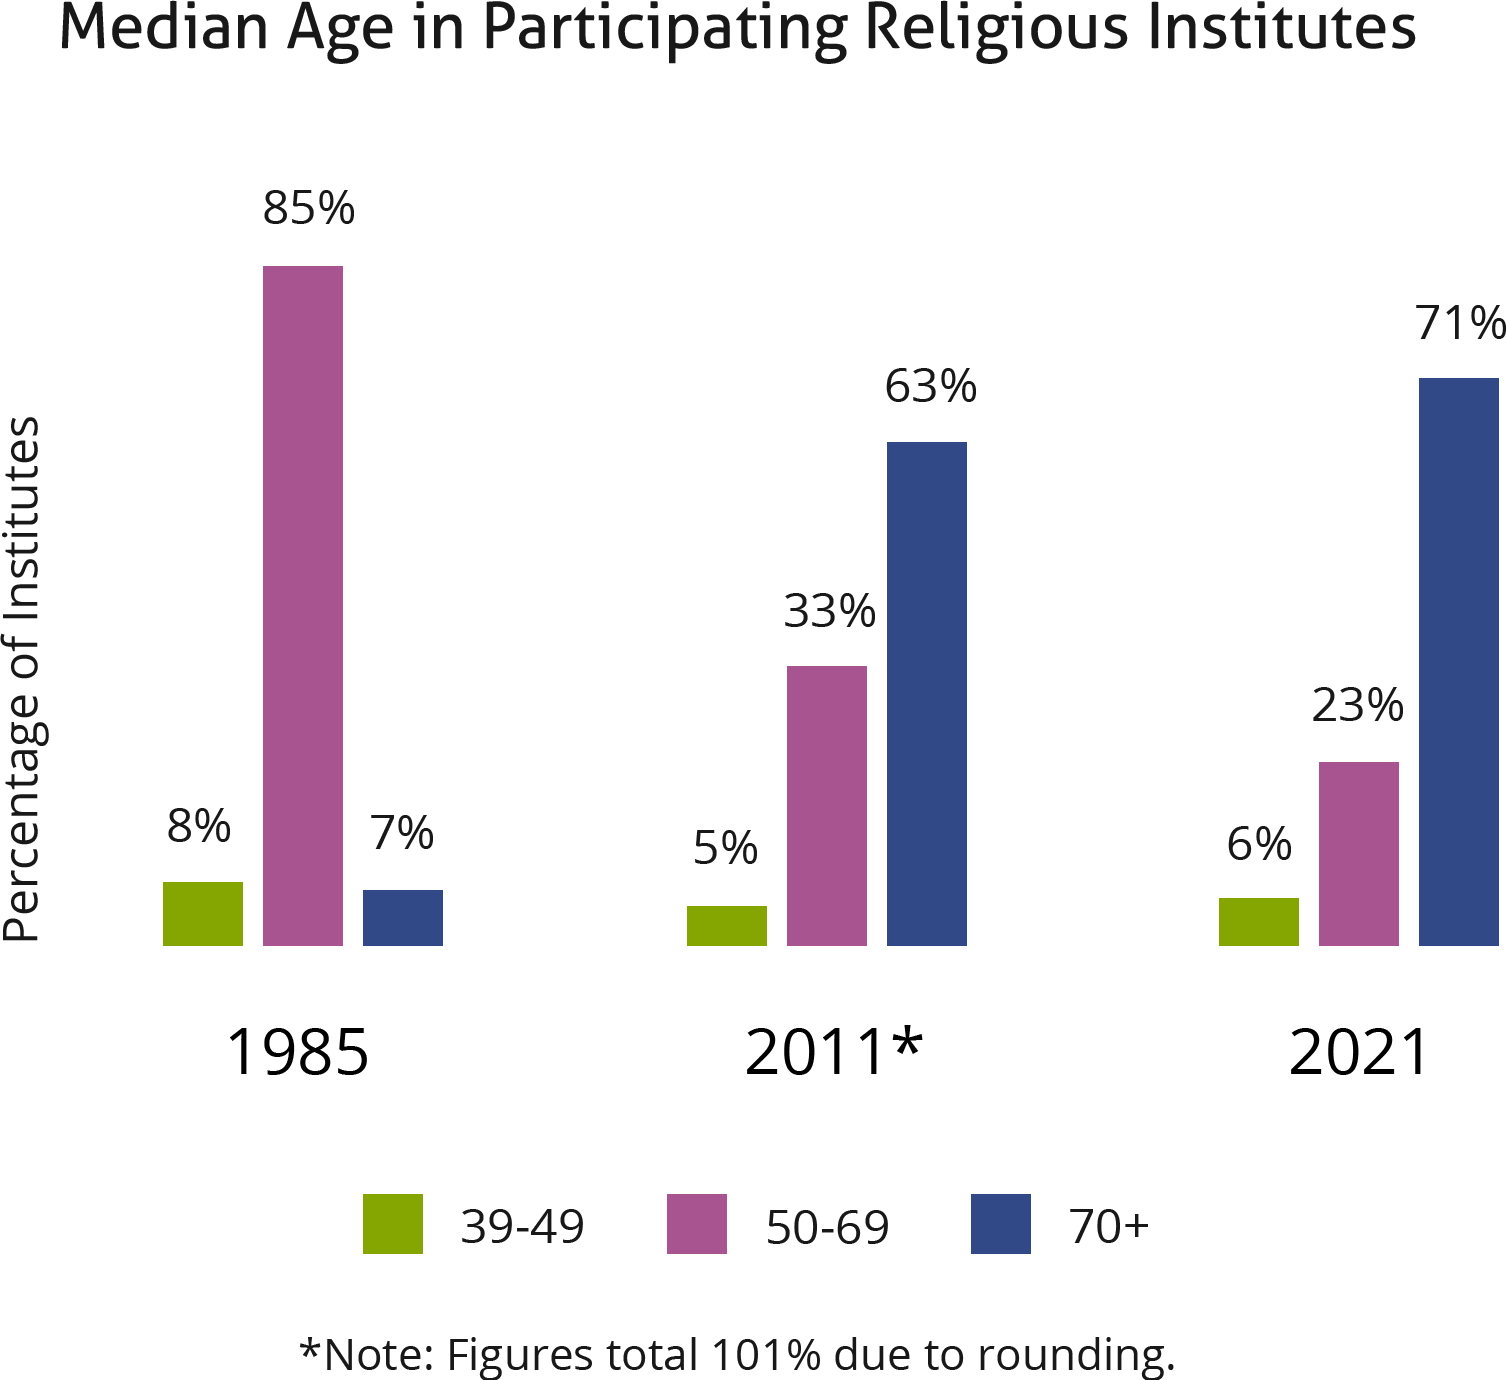 Median age in participating religious institutes chart